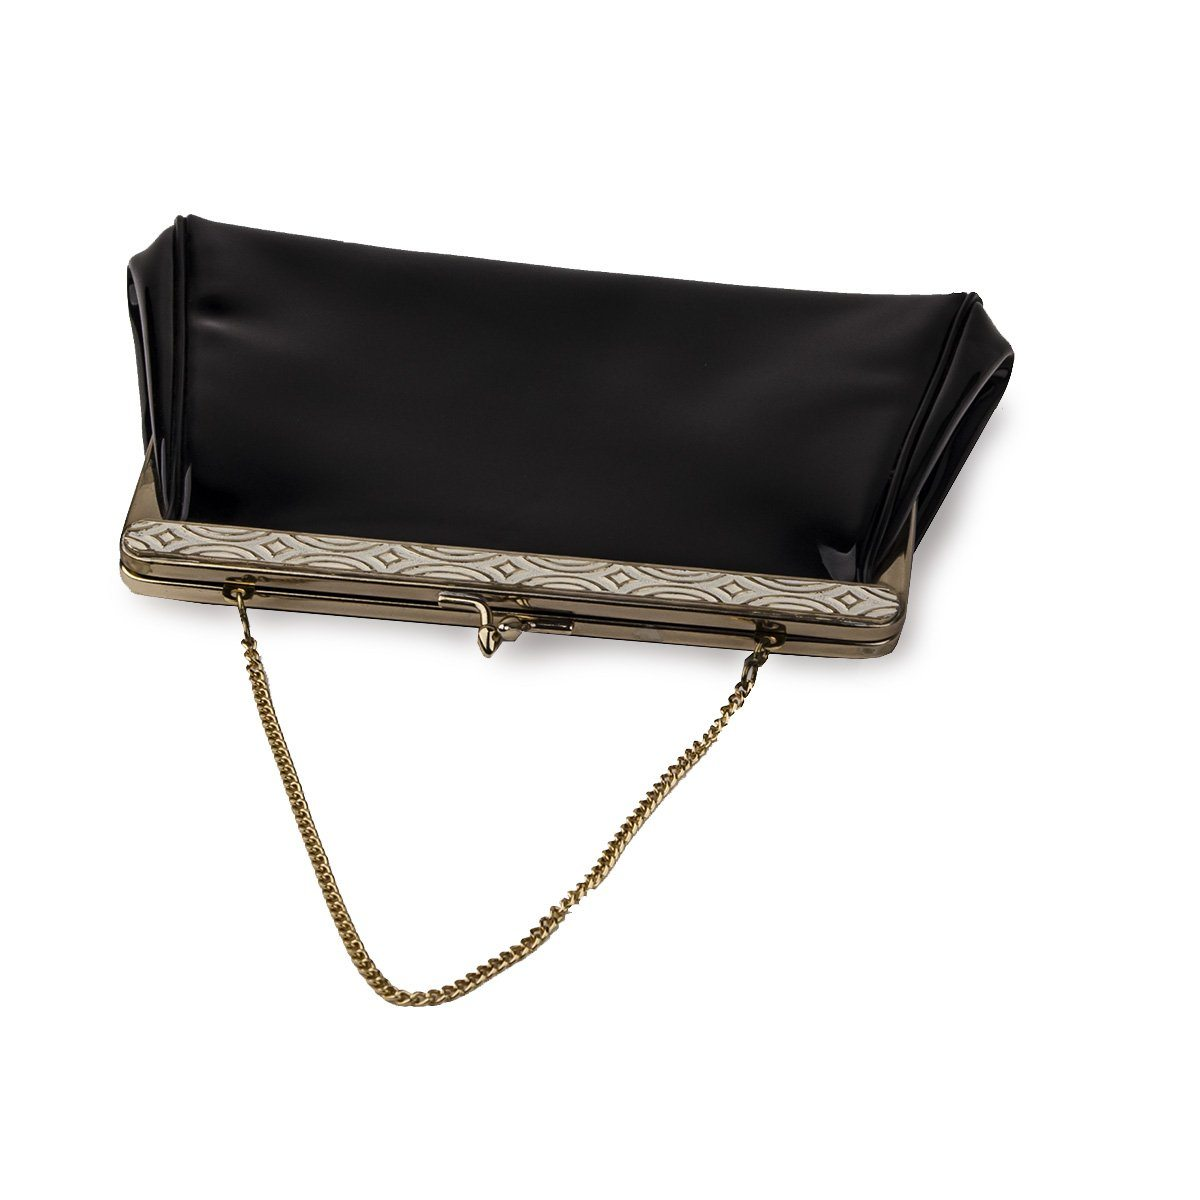 Harry Levine Black Patent Clutch 3 / Evening Bag with Gold Chain